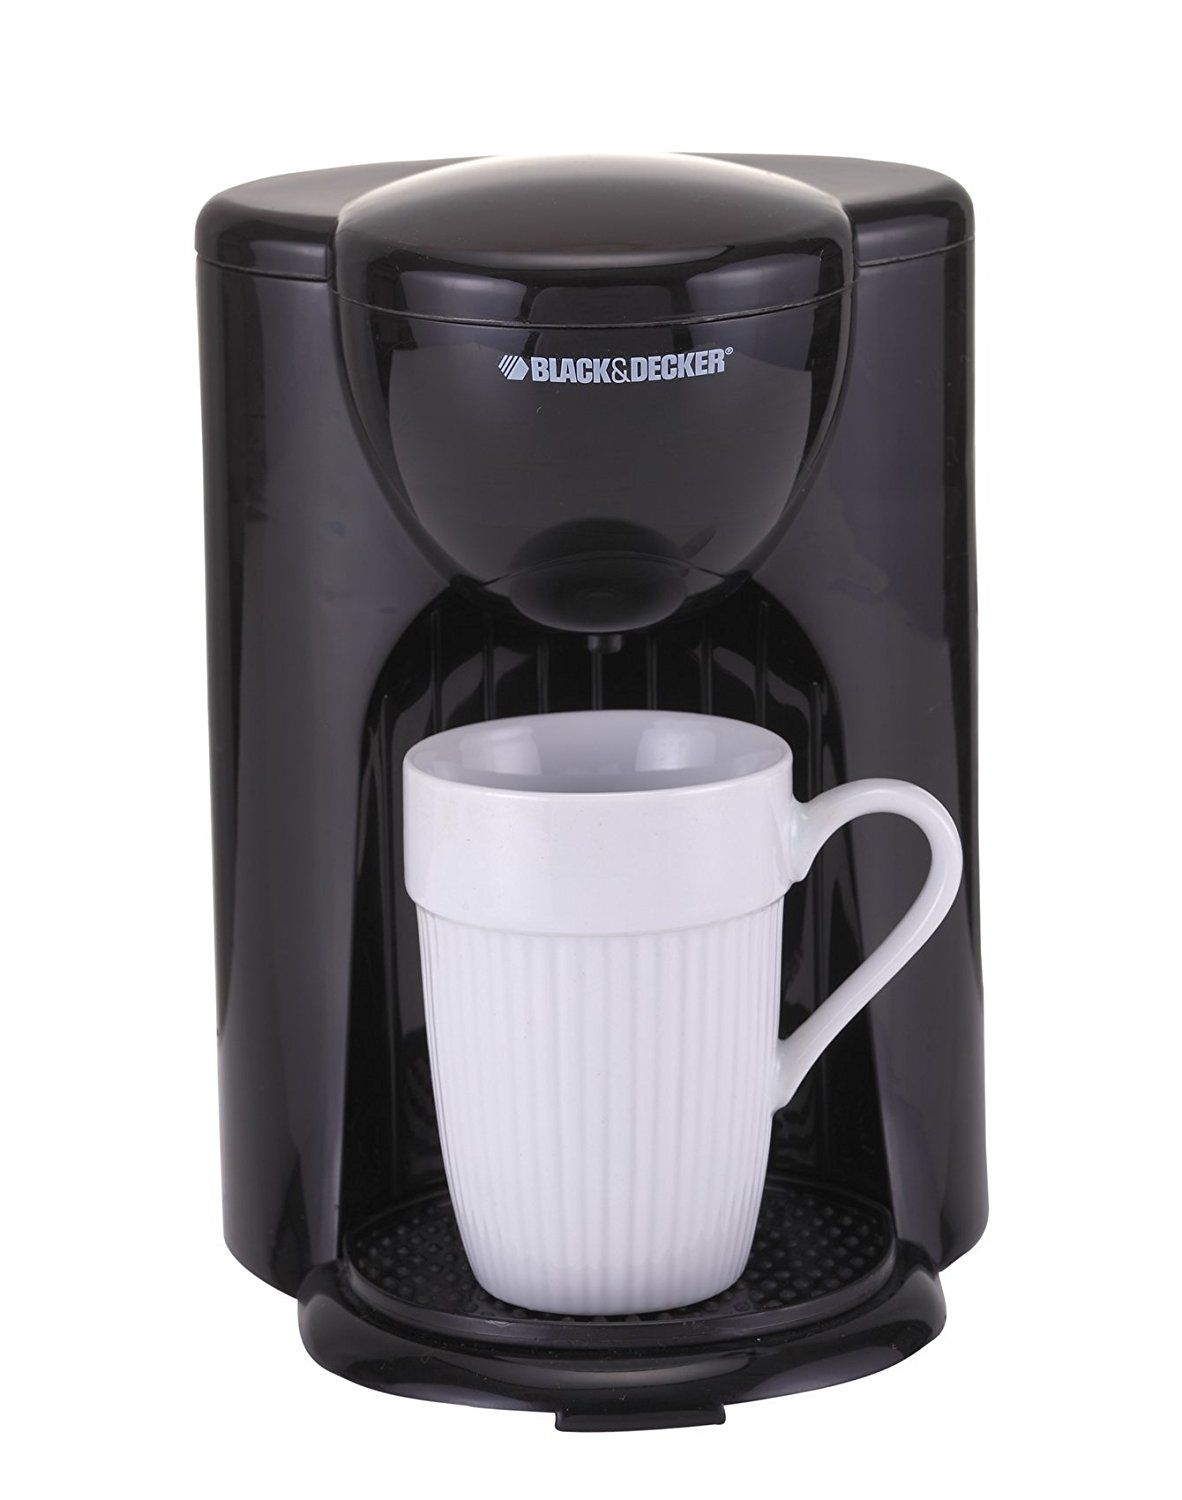 Coffee Maker Buy Amazon http//bit.ly/2I5NPQw 1 cup